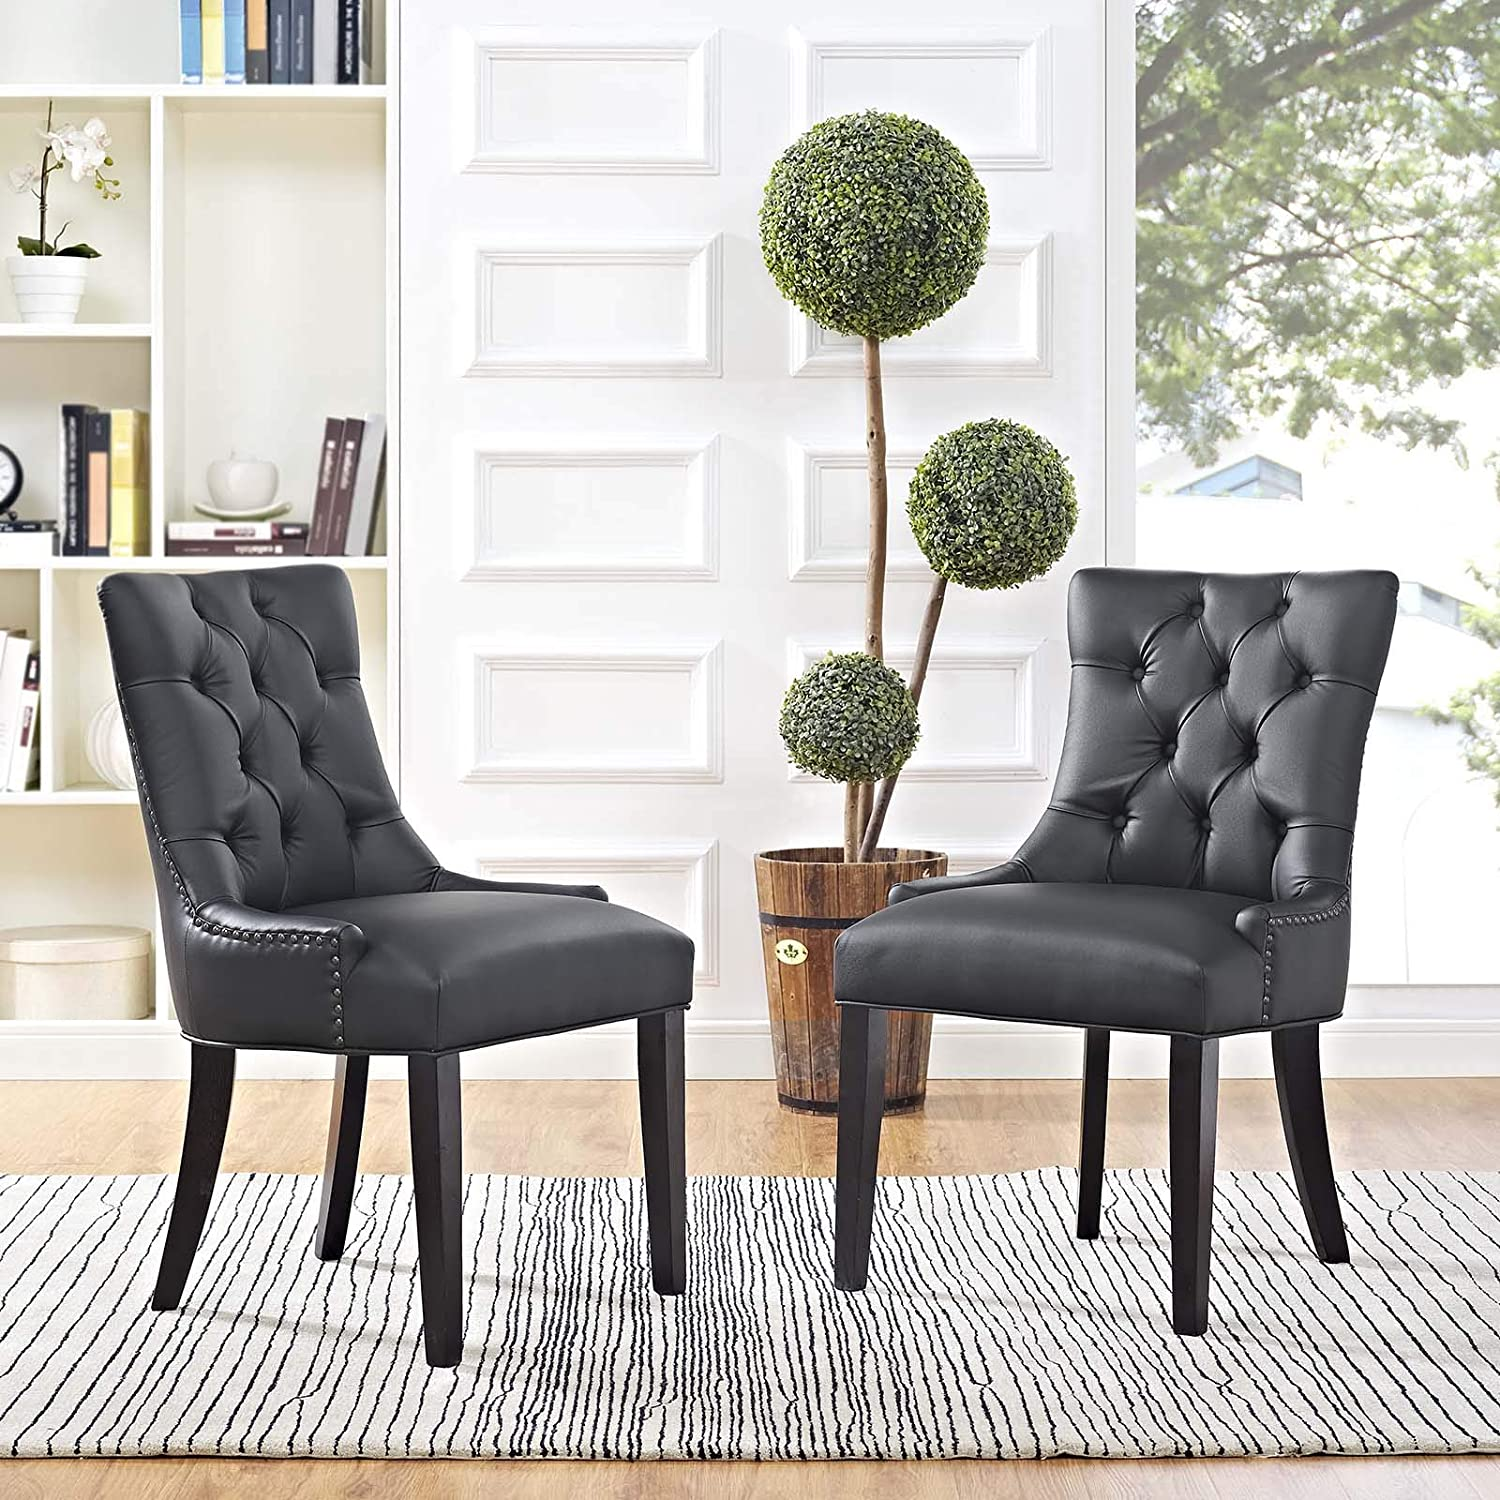 Modway Regent Modern Tufted Faux Leather Upholstered Two Kitchen and Dining Room Chairs with Nailhead Trim in Black